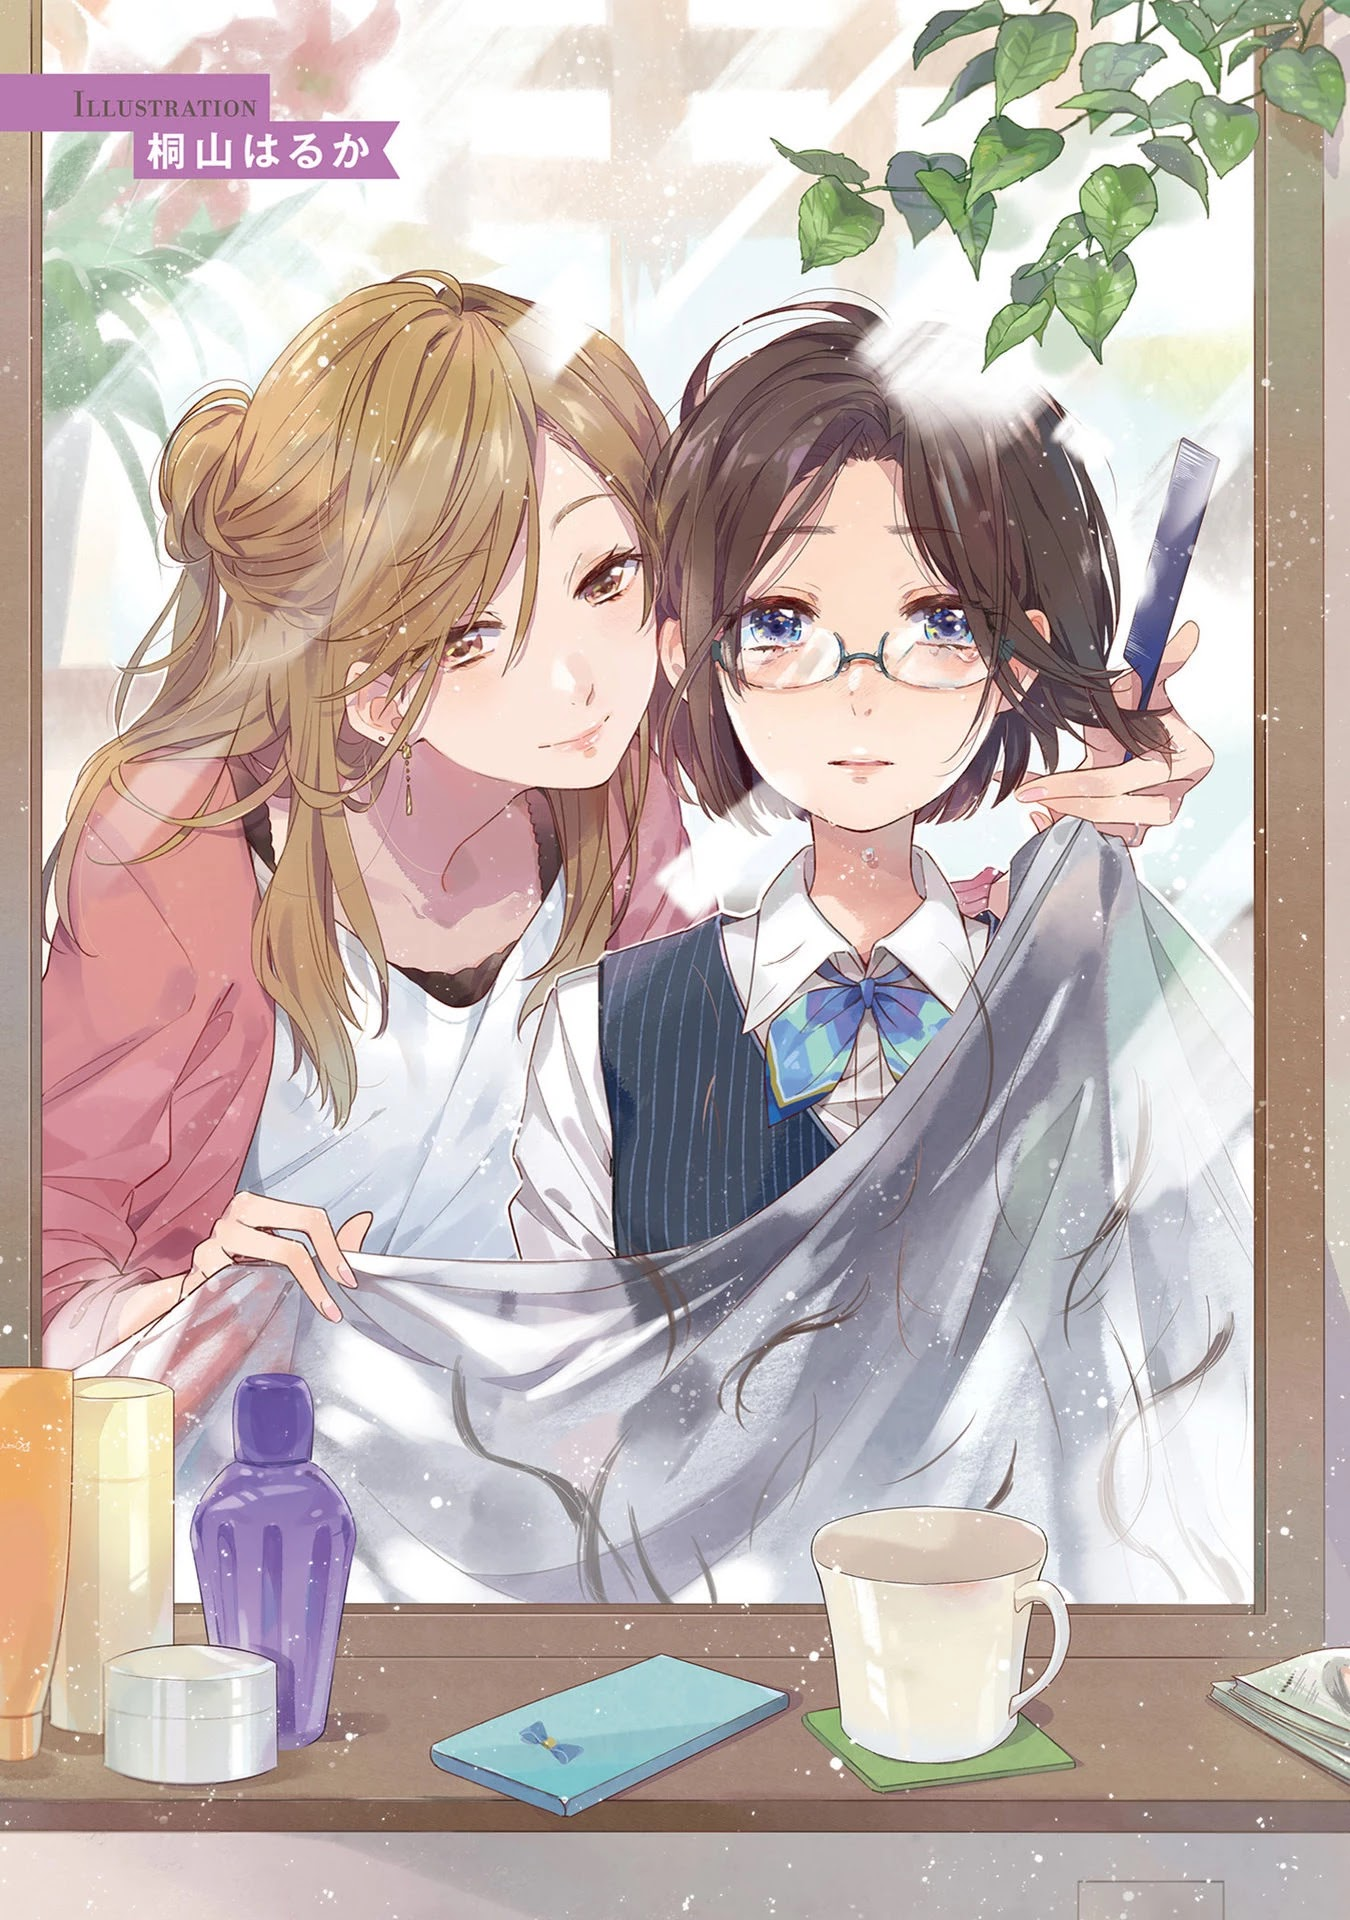 Every Time We Meet Eye To Eye, I Fall In Love With Her - chapter 5 - #3